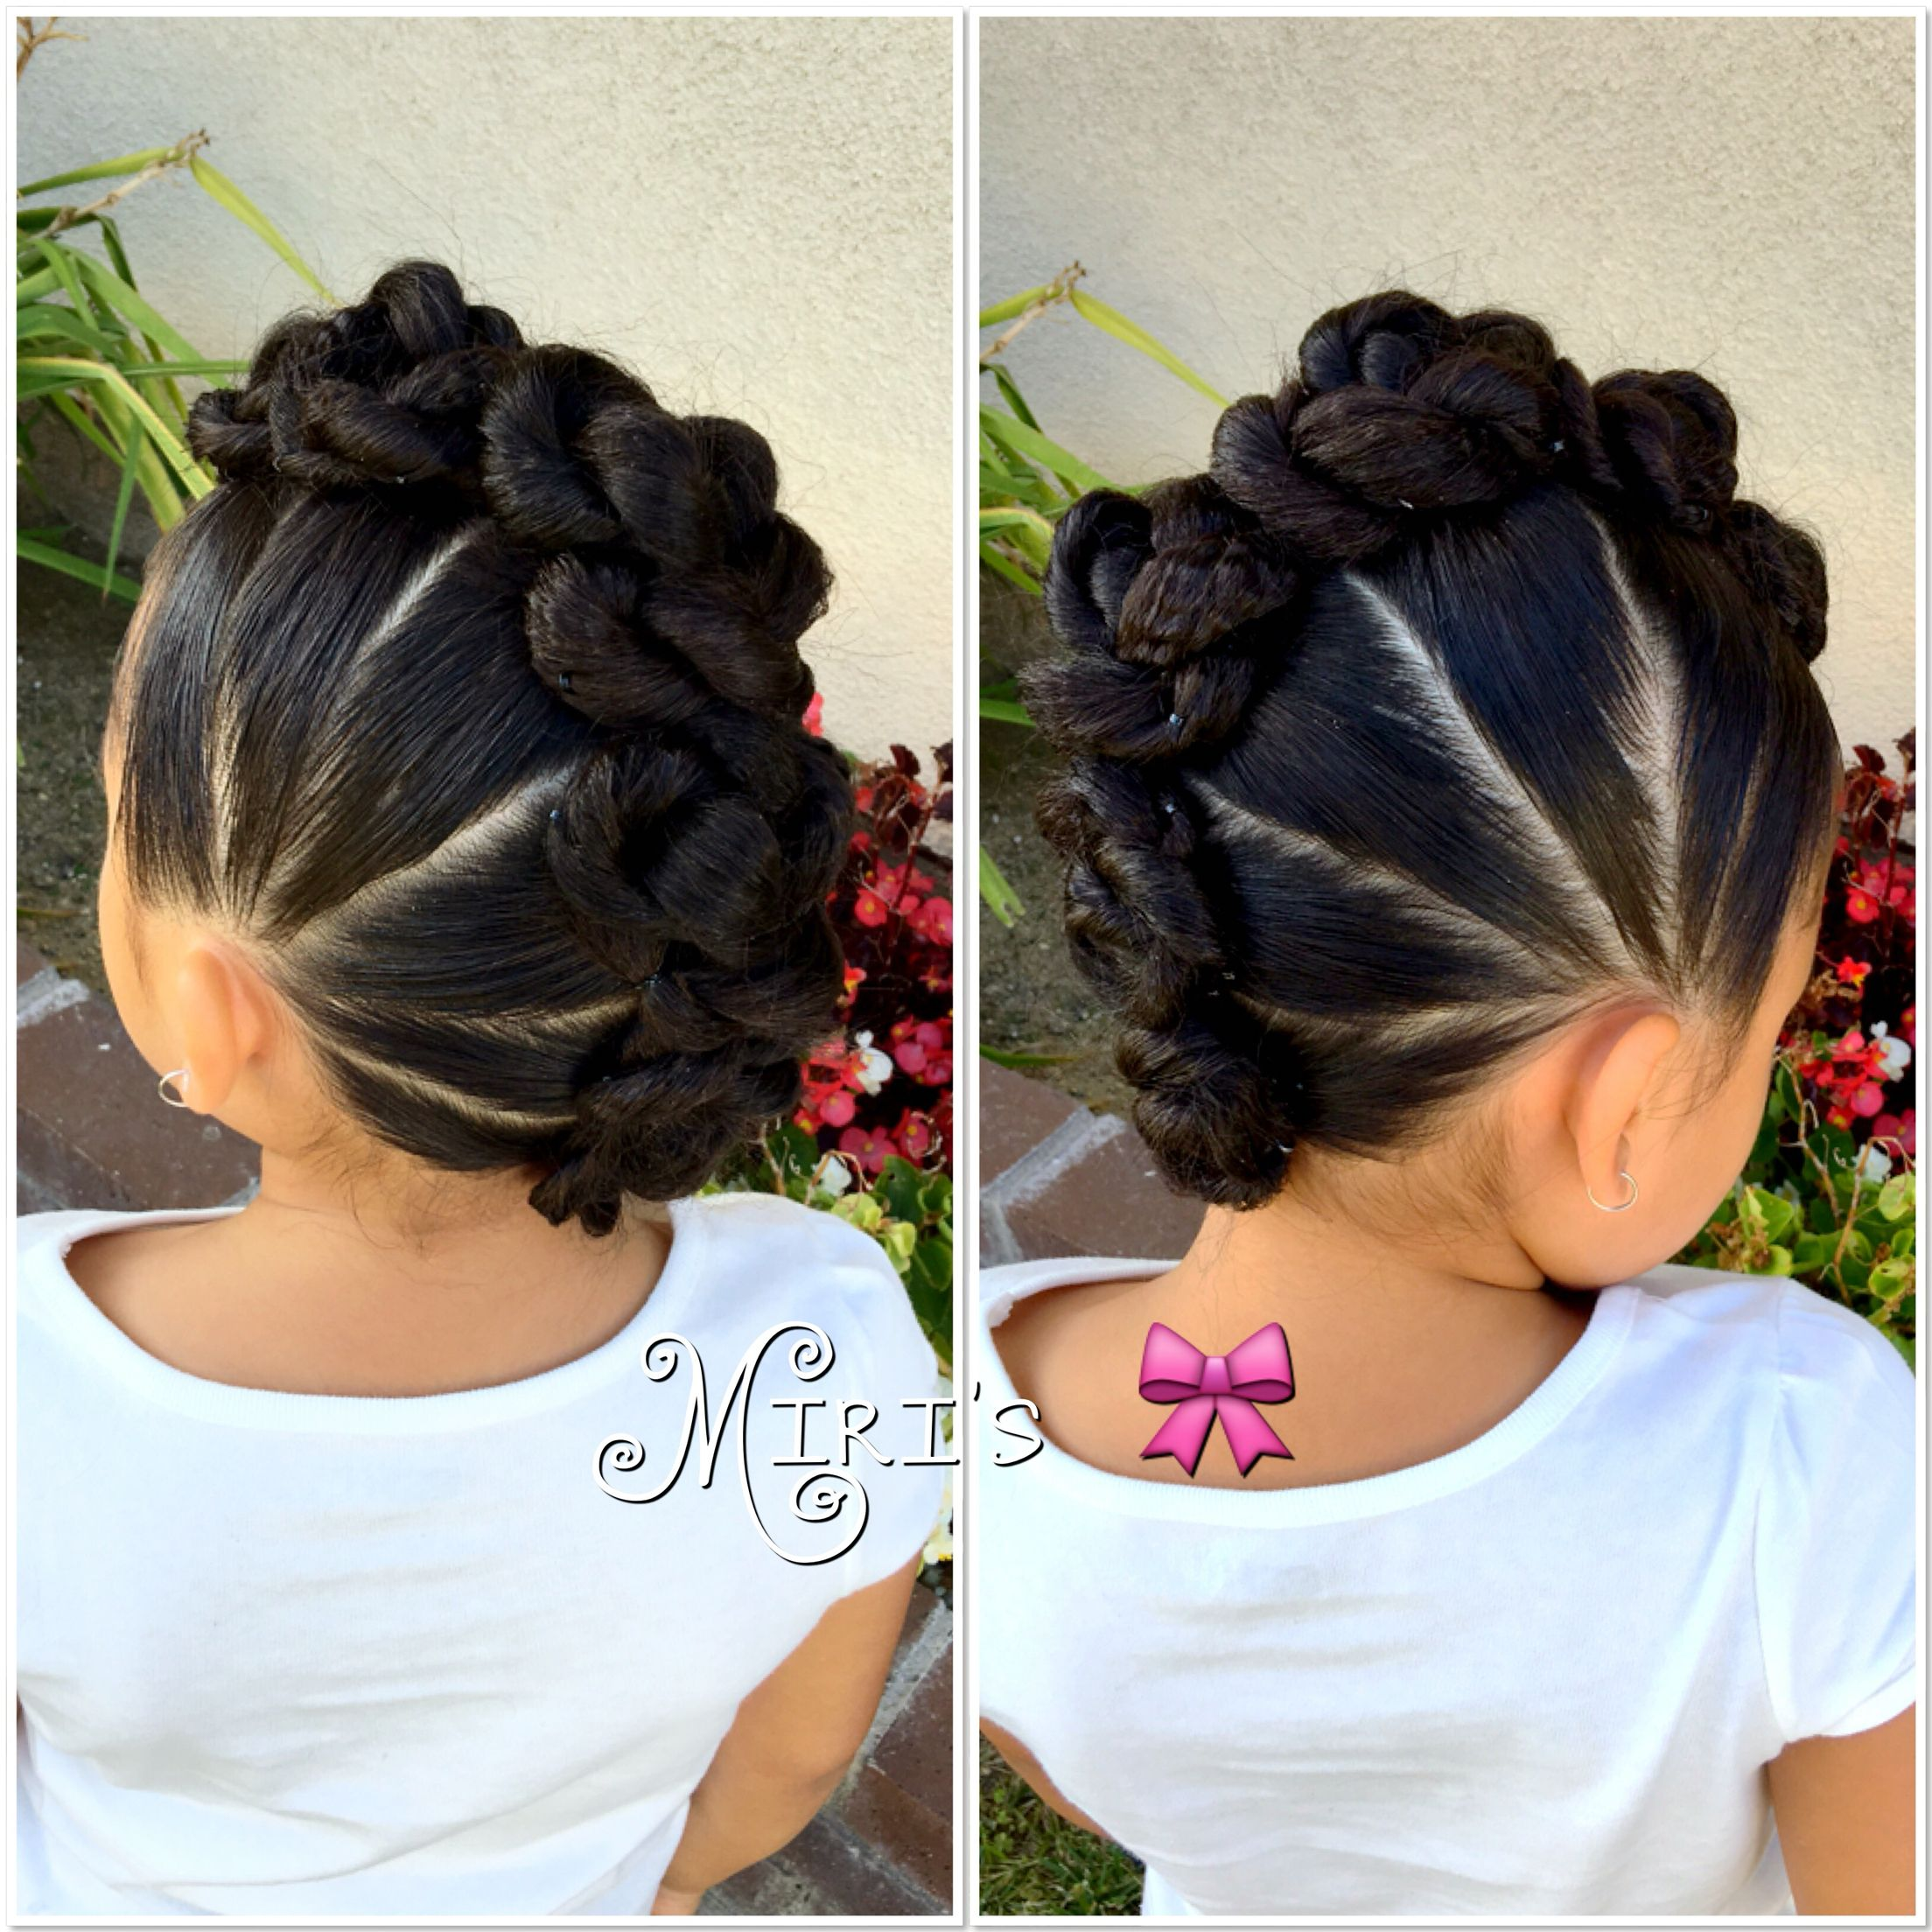 mohawk with twists hair style